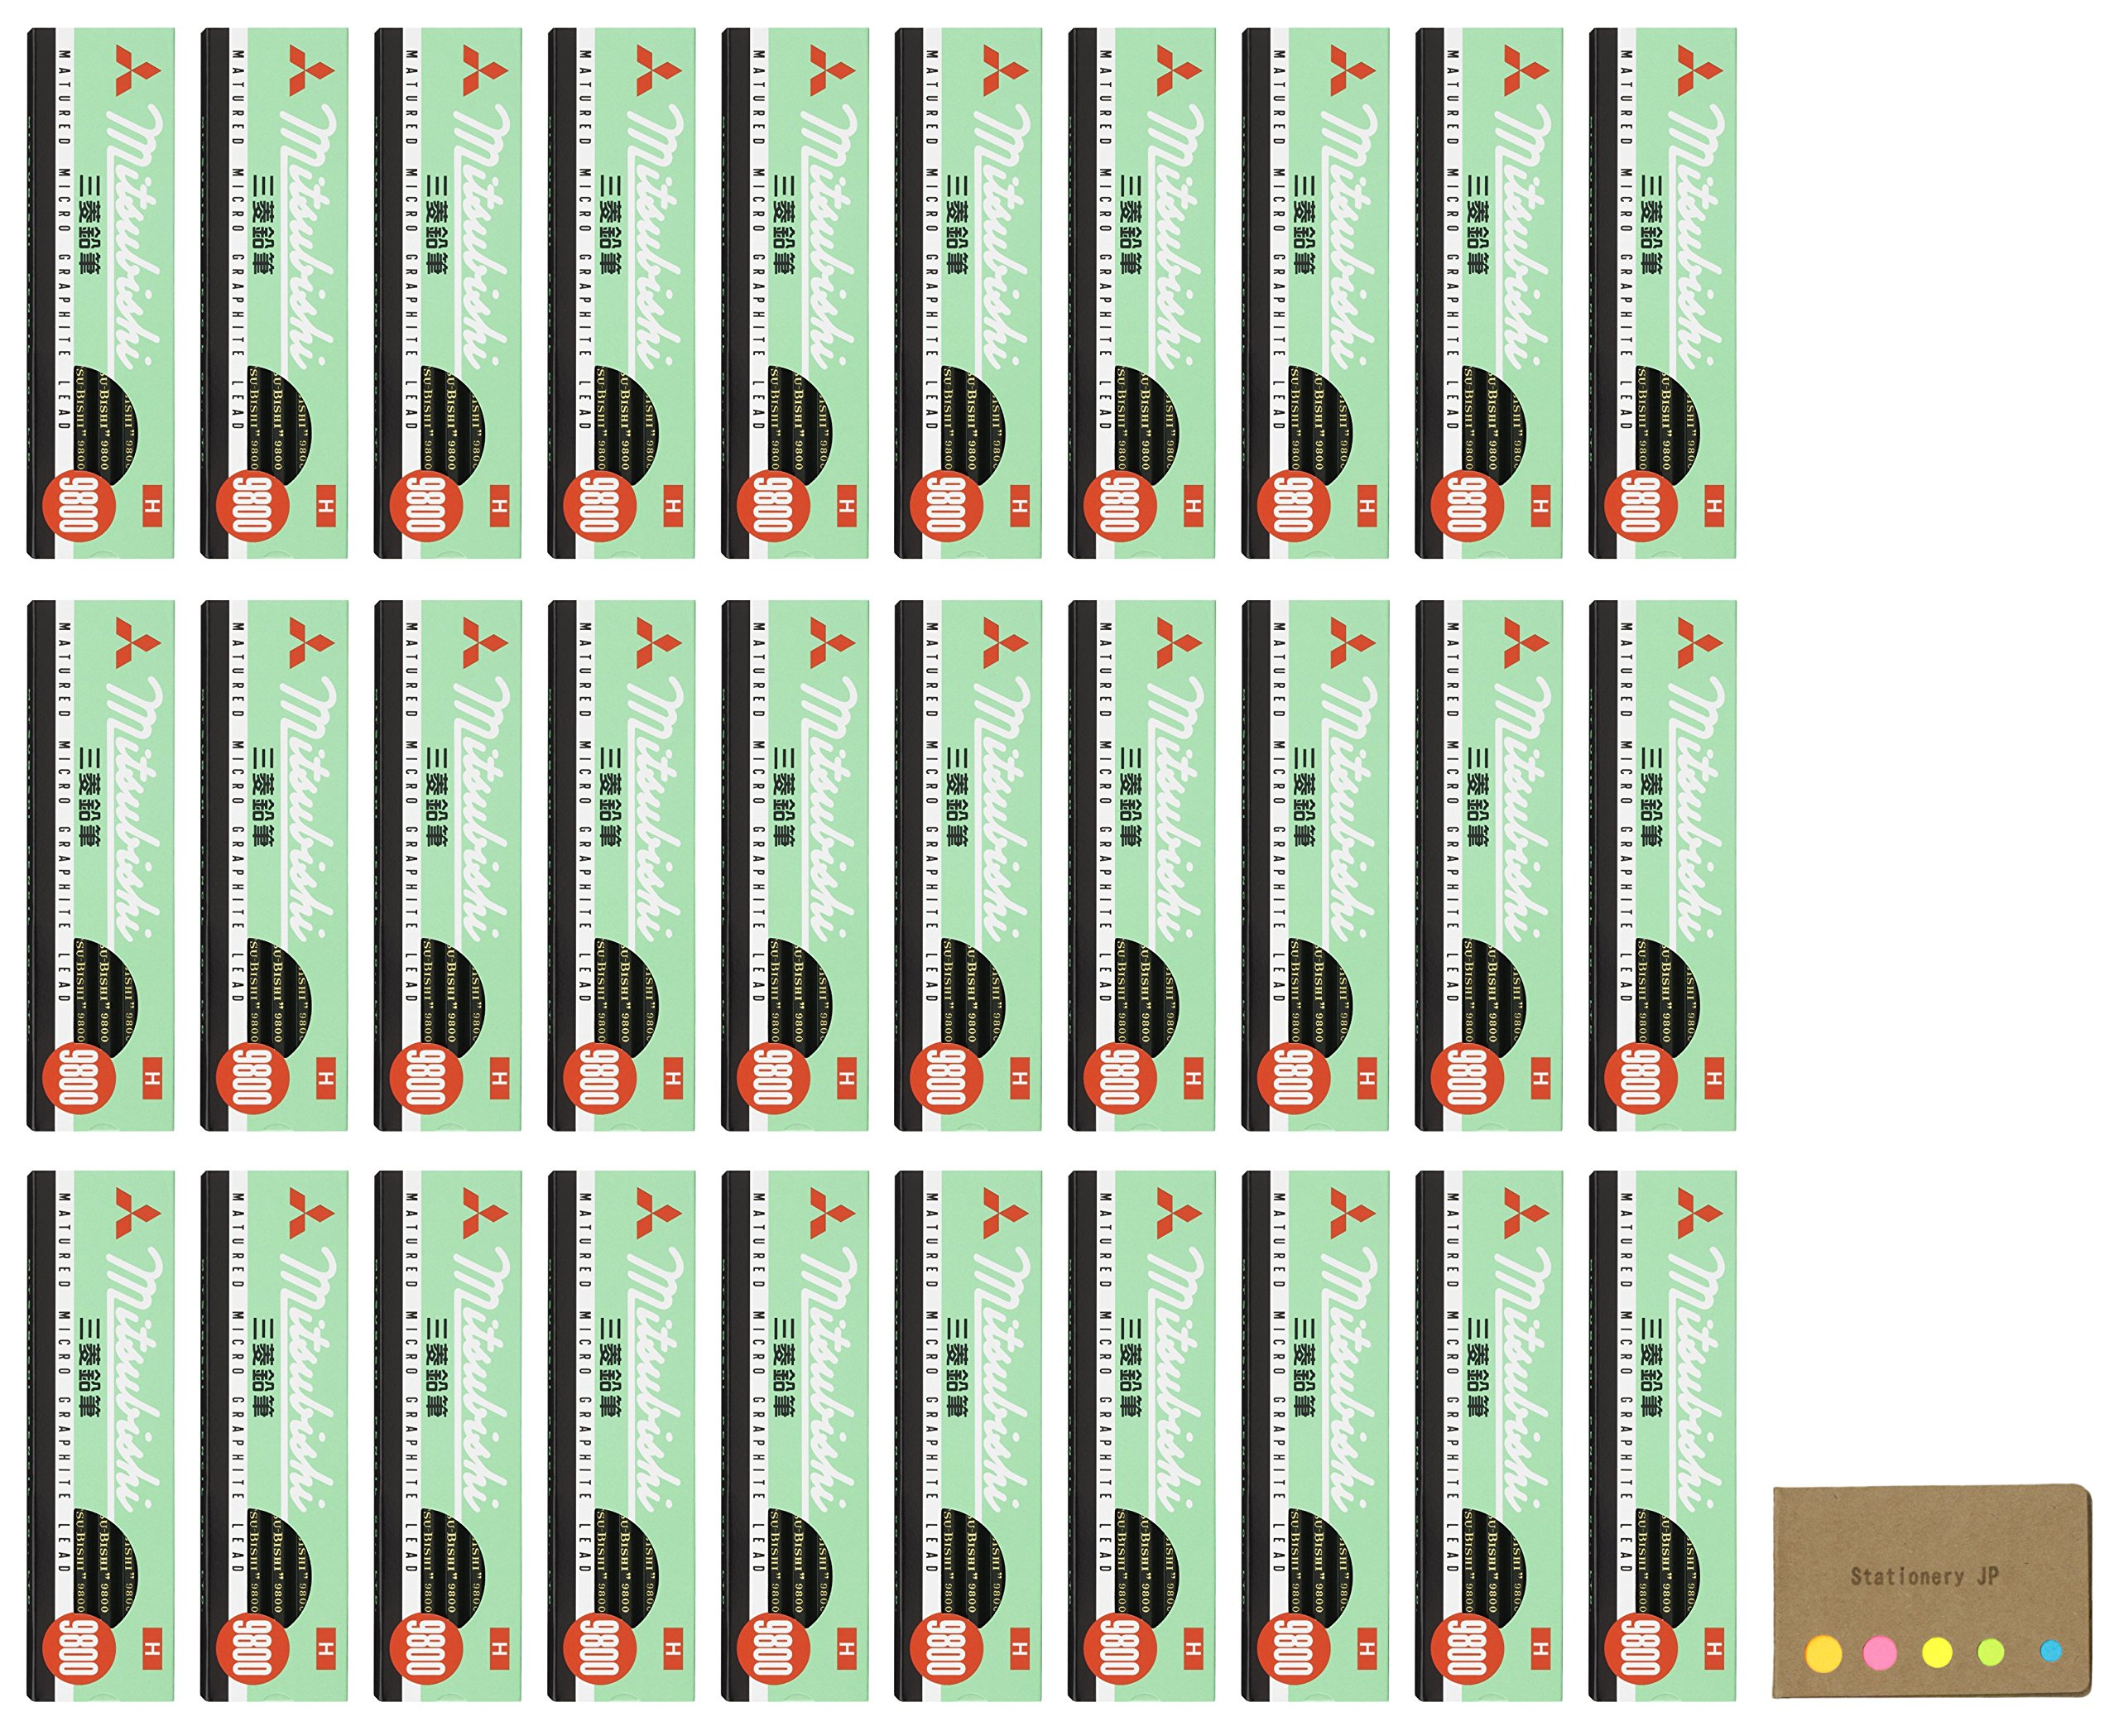 Uni Mitsubishi 9800 Pencil, H, 30-pack/total 360 pcs, Sticky Notes Value Set by Stationery JP (Image #1)